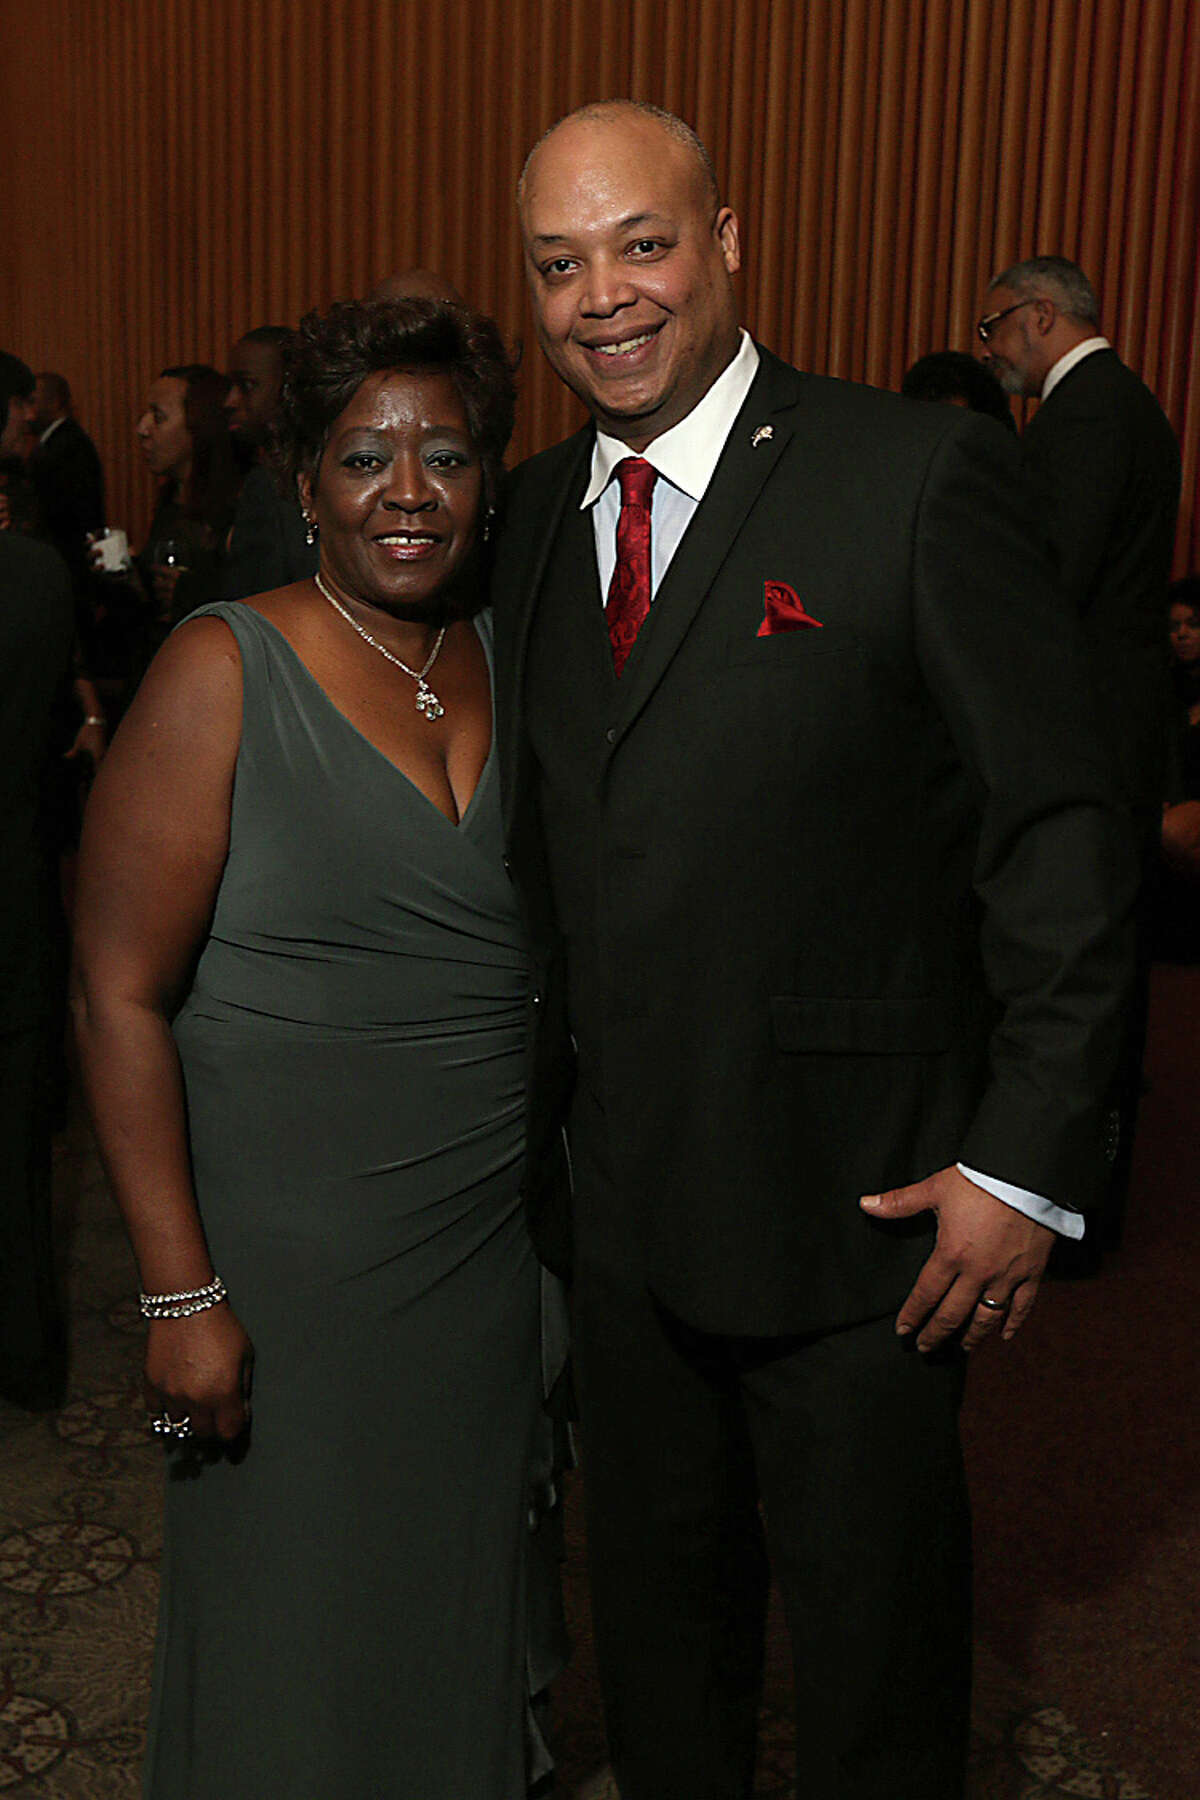 Were you Seen at the New York State Association of Black & Puerto Rican Legislators dinner gala at the Empire State Plaza Convention Center in Albany on Sunday, Feb. 16, 2014?